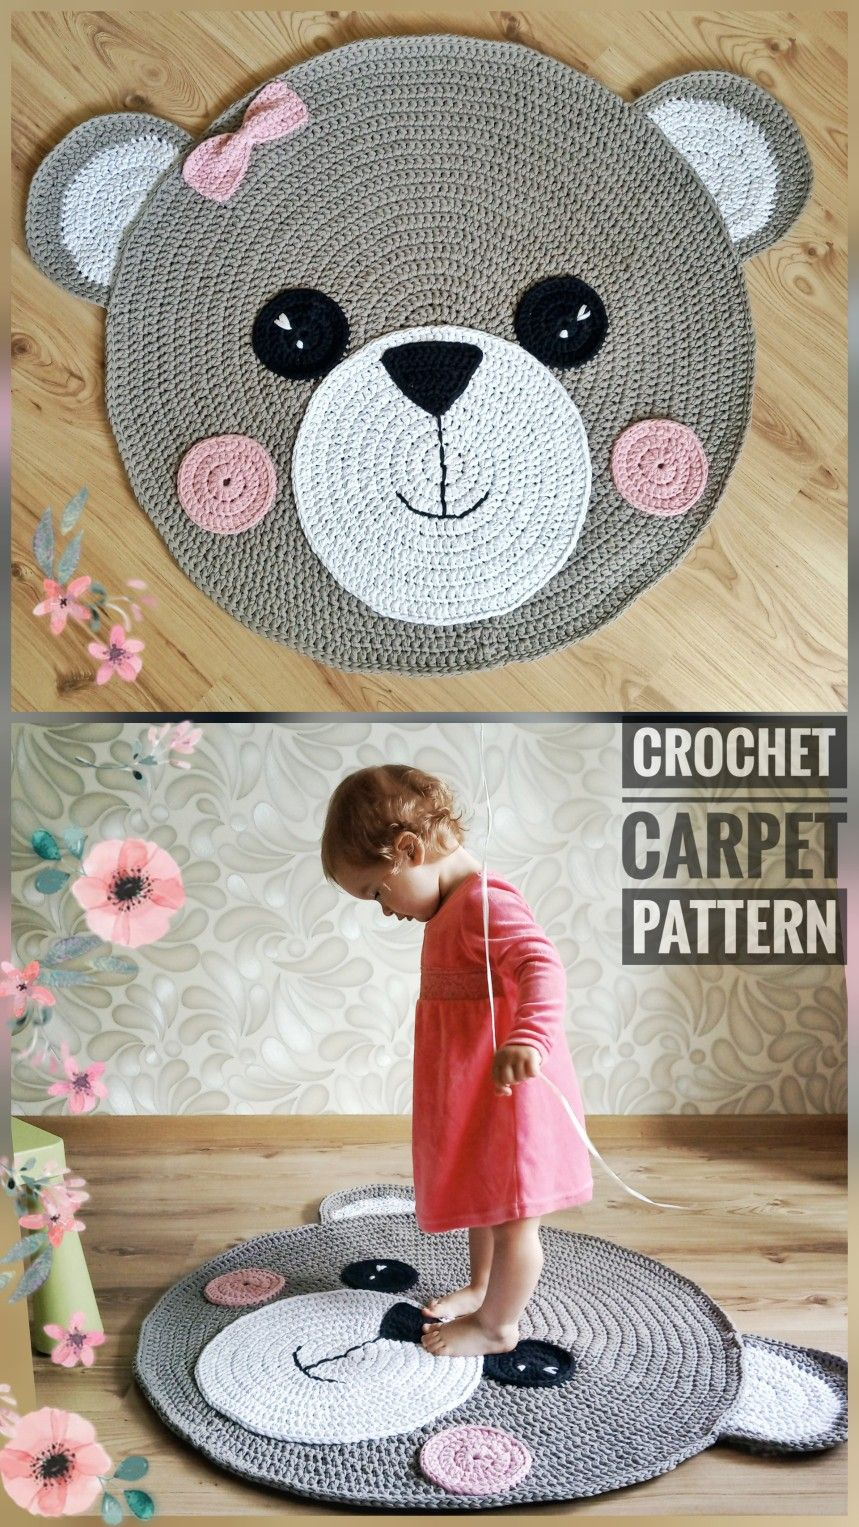 Crochet Rug Pattern - Carpet Teddy Bear - Crochet Teddy Bear-  Crochet Bear Pattern - Handmade Rug  #crochetbearpatterns